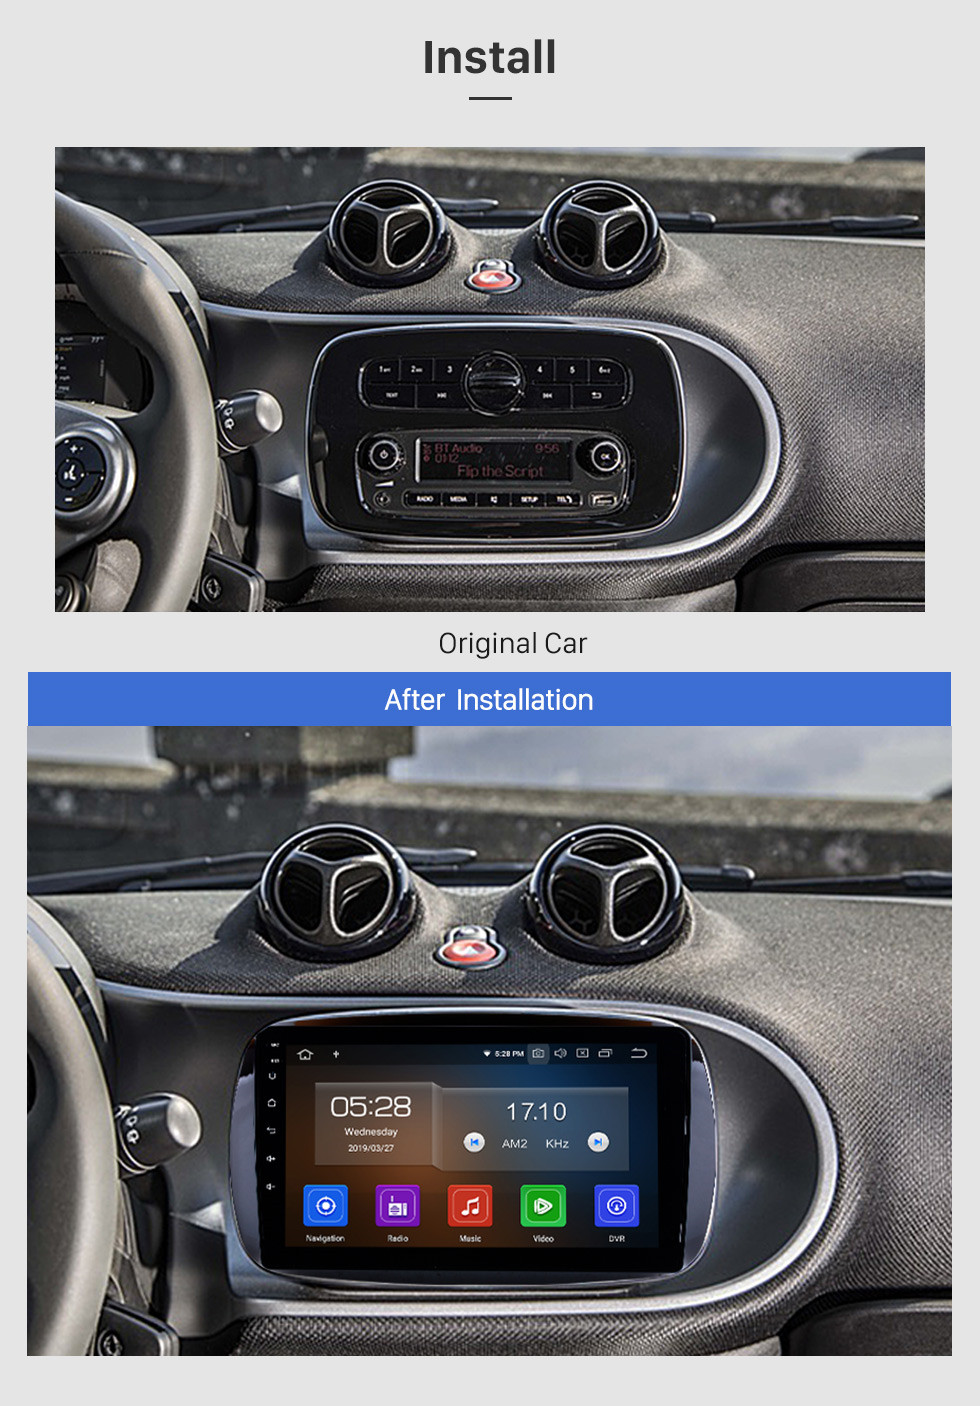 Seicane 9 Inch 2015 2016 Mercedes-Benz SMART Fortwo Android 9.0 GPS Navigation system Radio Capacitive Touch Screen TPMS DVR OBD II Rear camera AUX USB 3G WiFi Steering Wheel Control HD 1080P Video Bluetooth